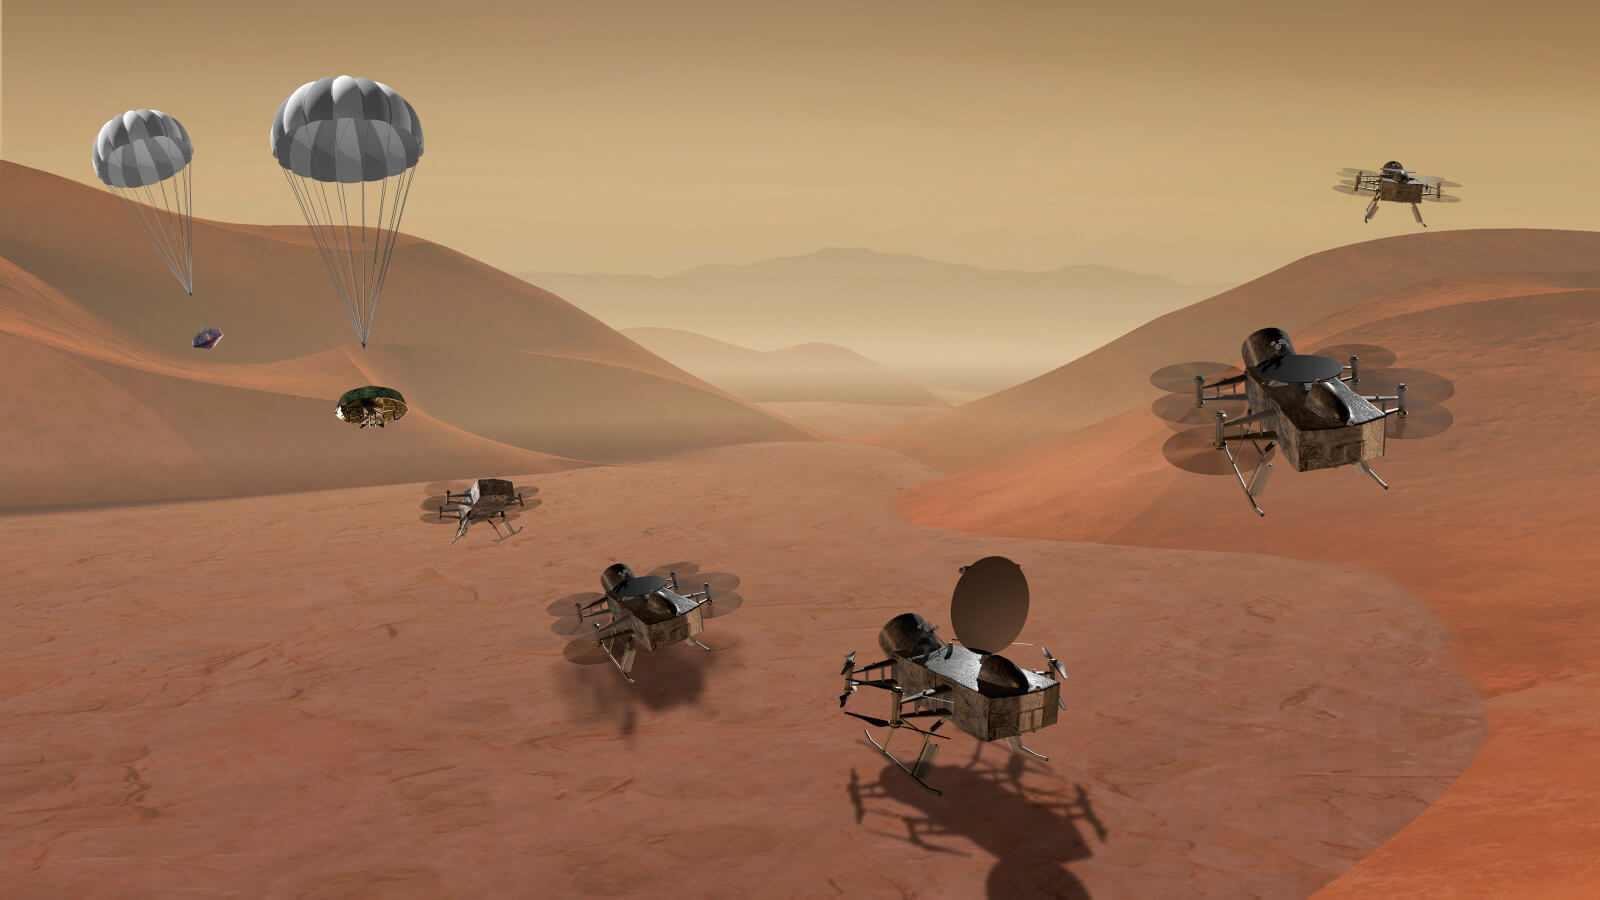 NASA to send flying drone Dragonfly to Saturn moon Titan